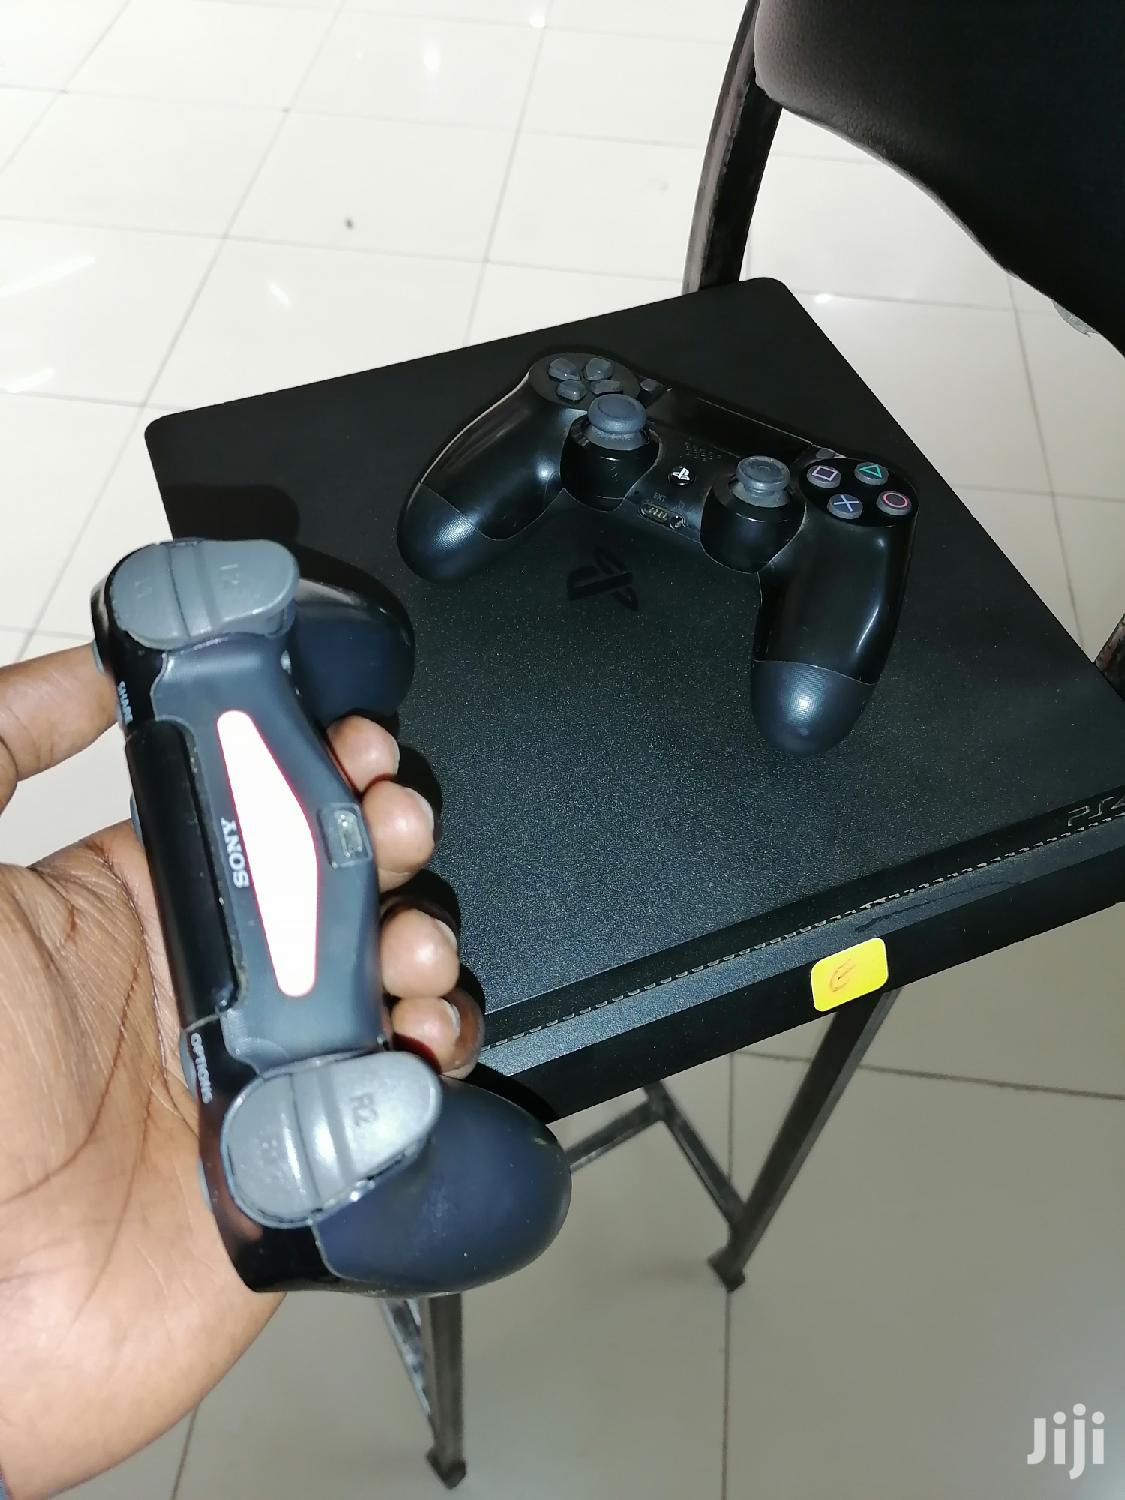 Ps4 Slim With 2 Pads Fifa 20 Gta5 | Video Game Consoles for sale in Nakuru East, Nakuru, Kenya